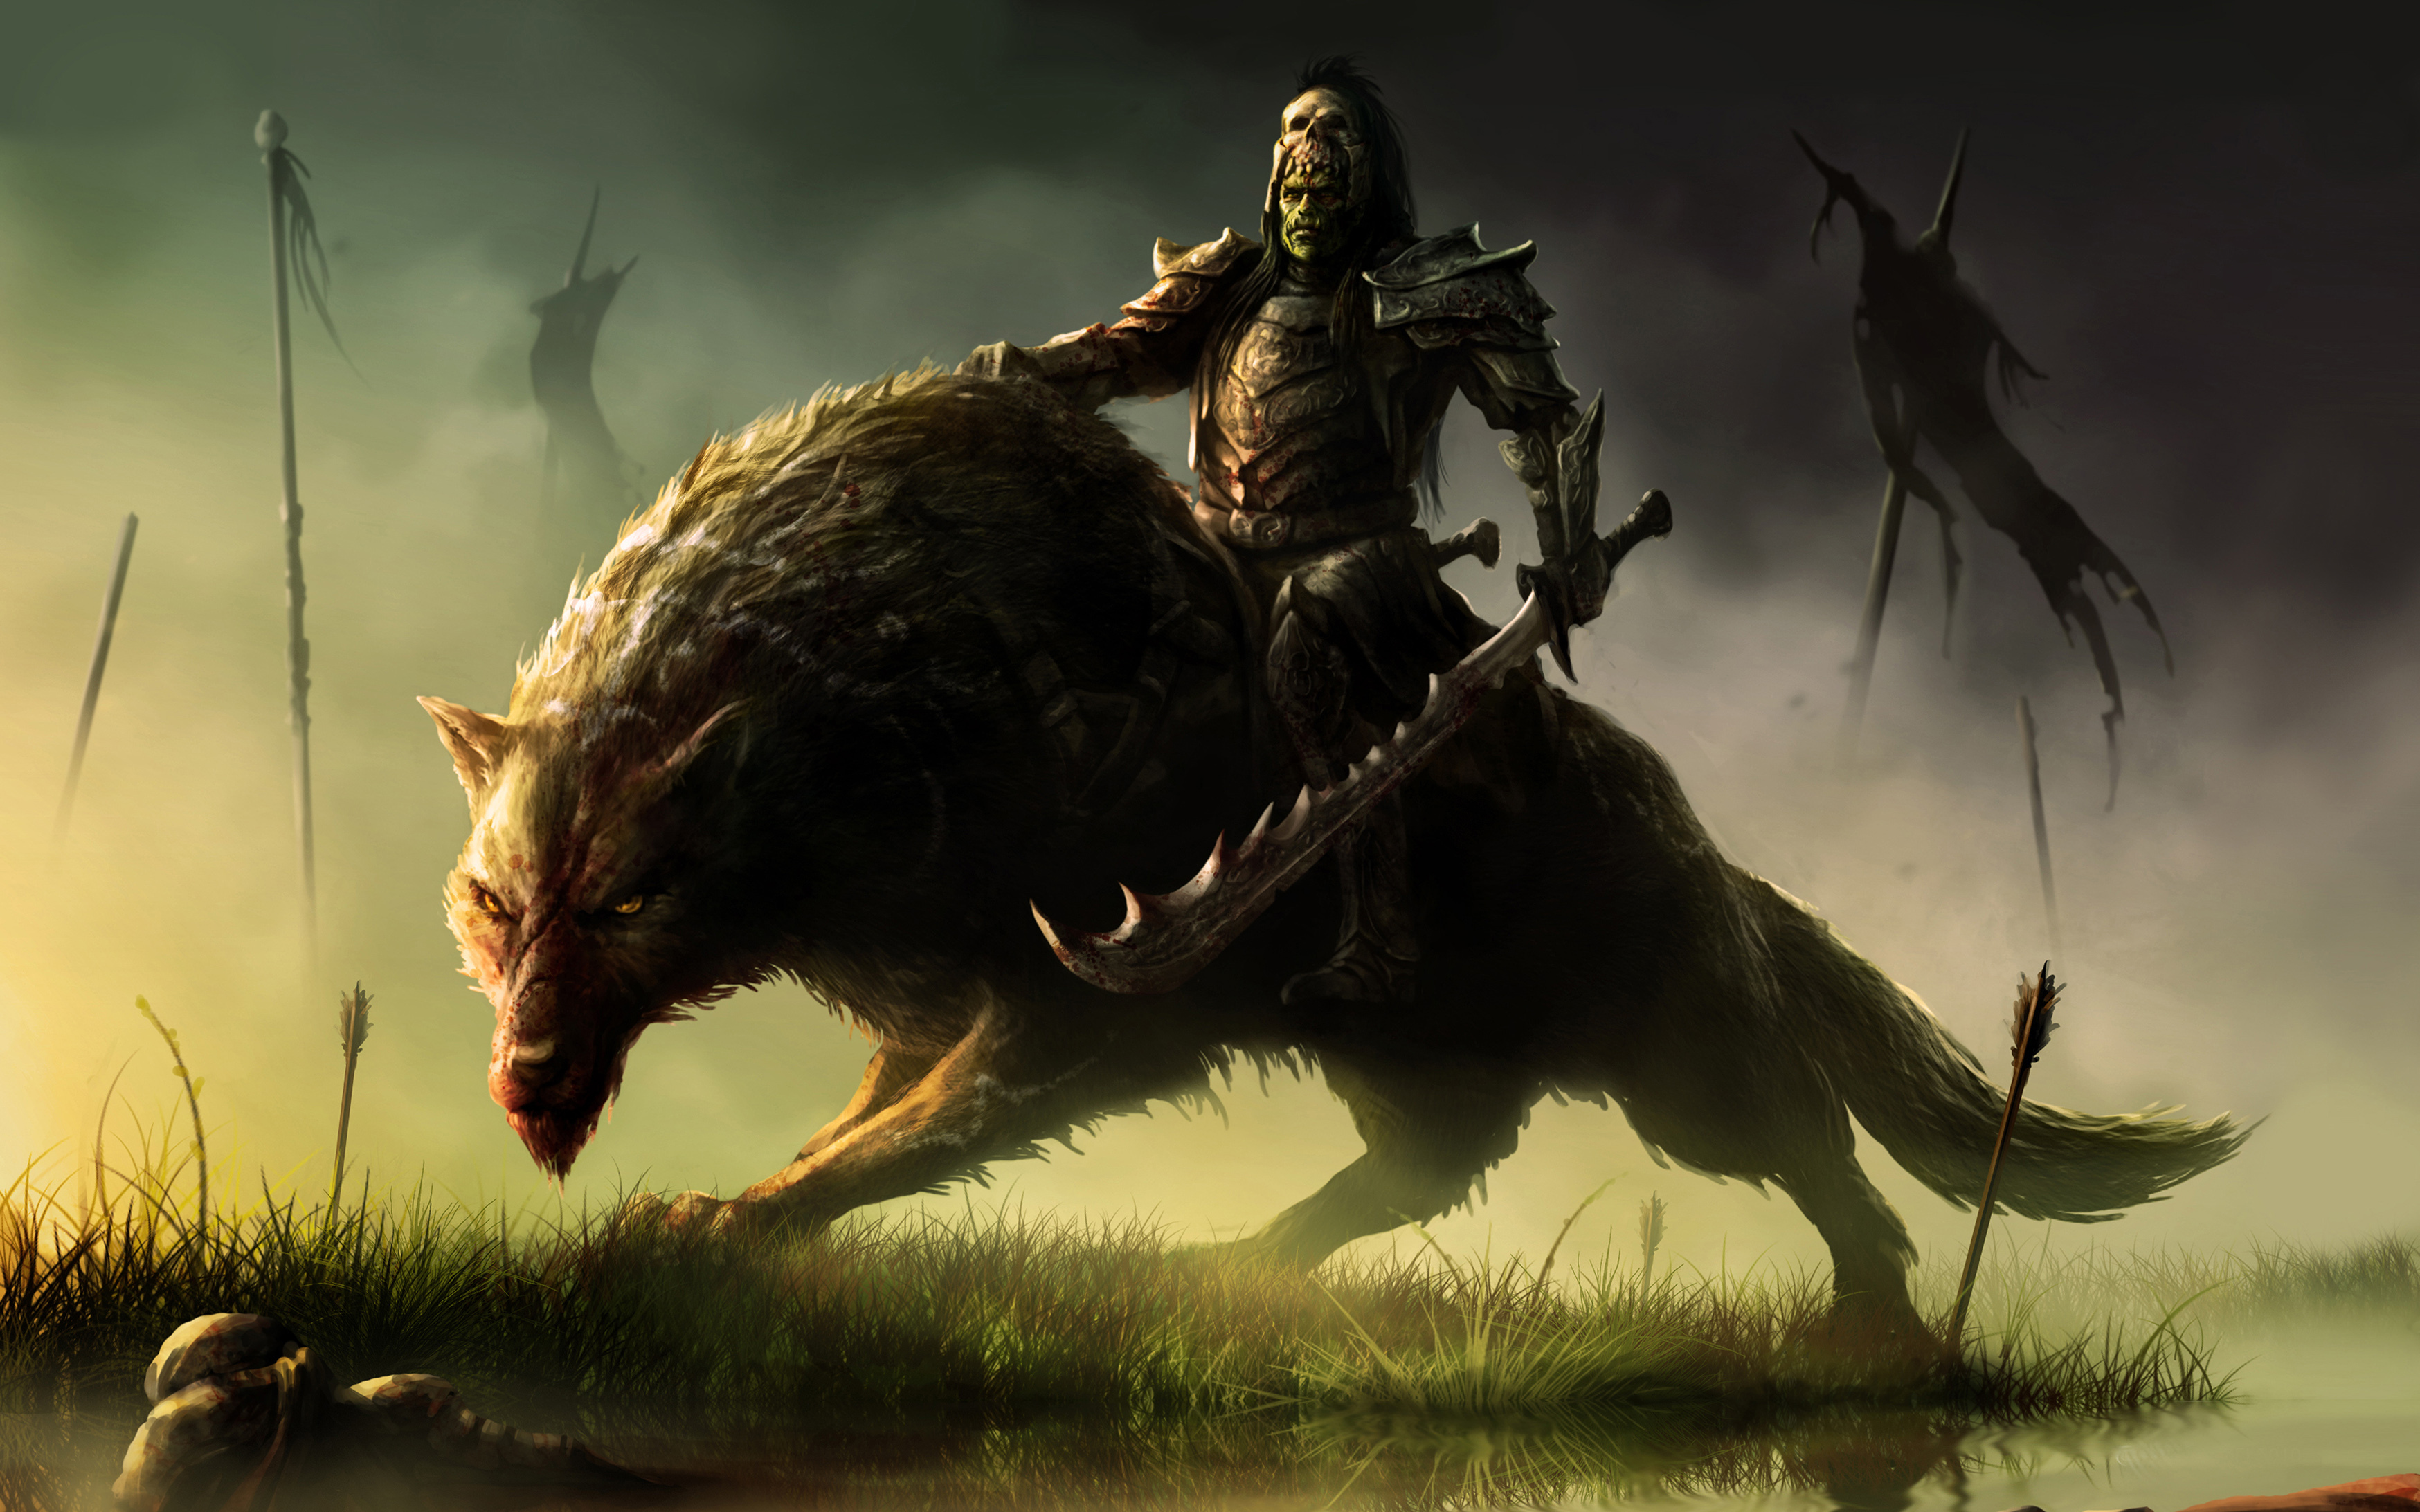 Wallpaper orc rider art warchief fantasy warrior wolf wallpapers 3496x2185